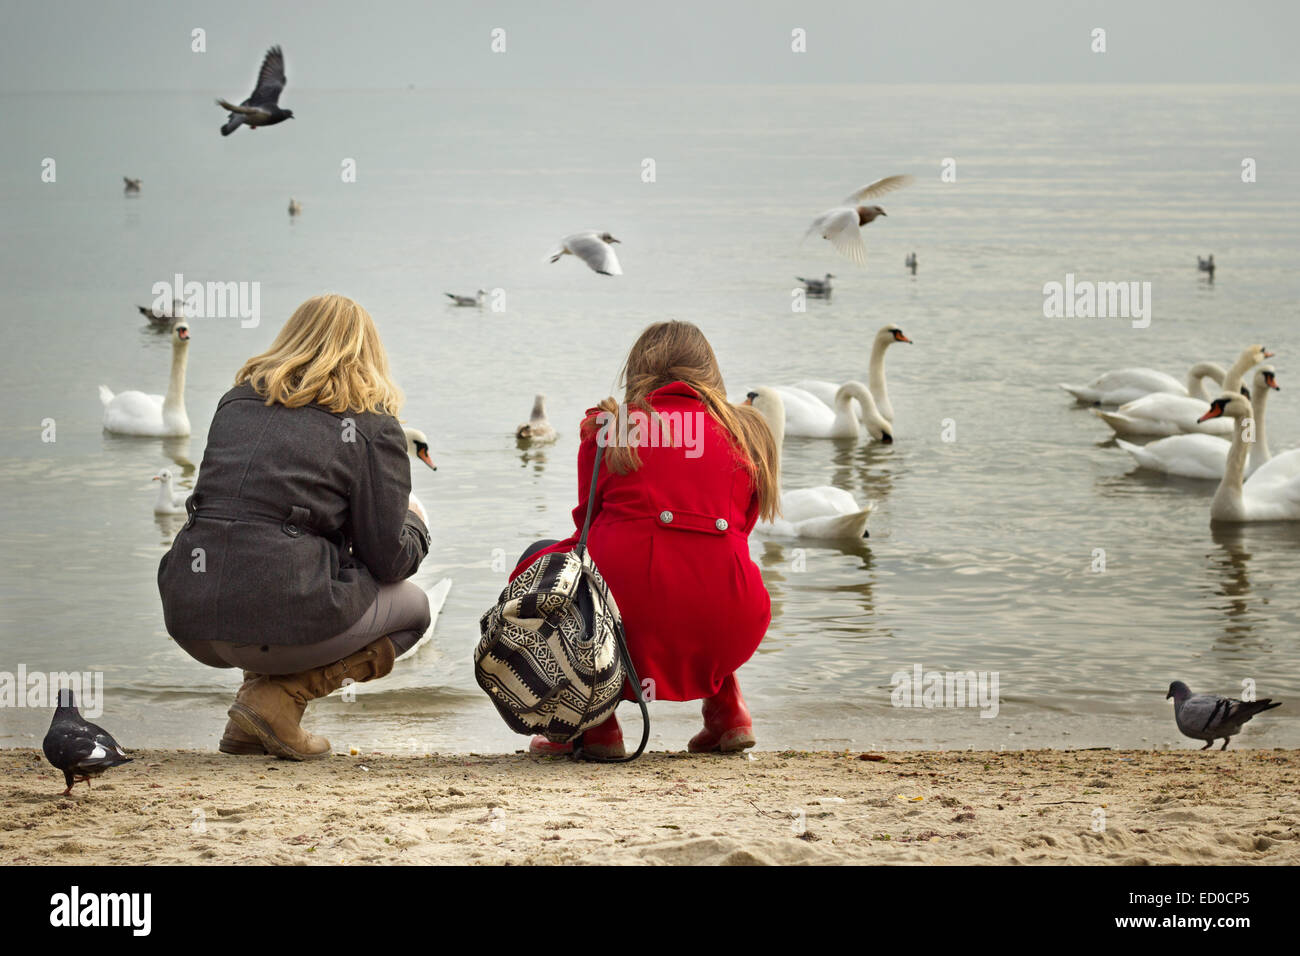 Bulgaria, Varna, Two girls (12-13, 16-17) on beach looking at birds - Stock Image